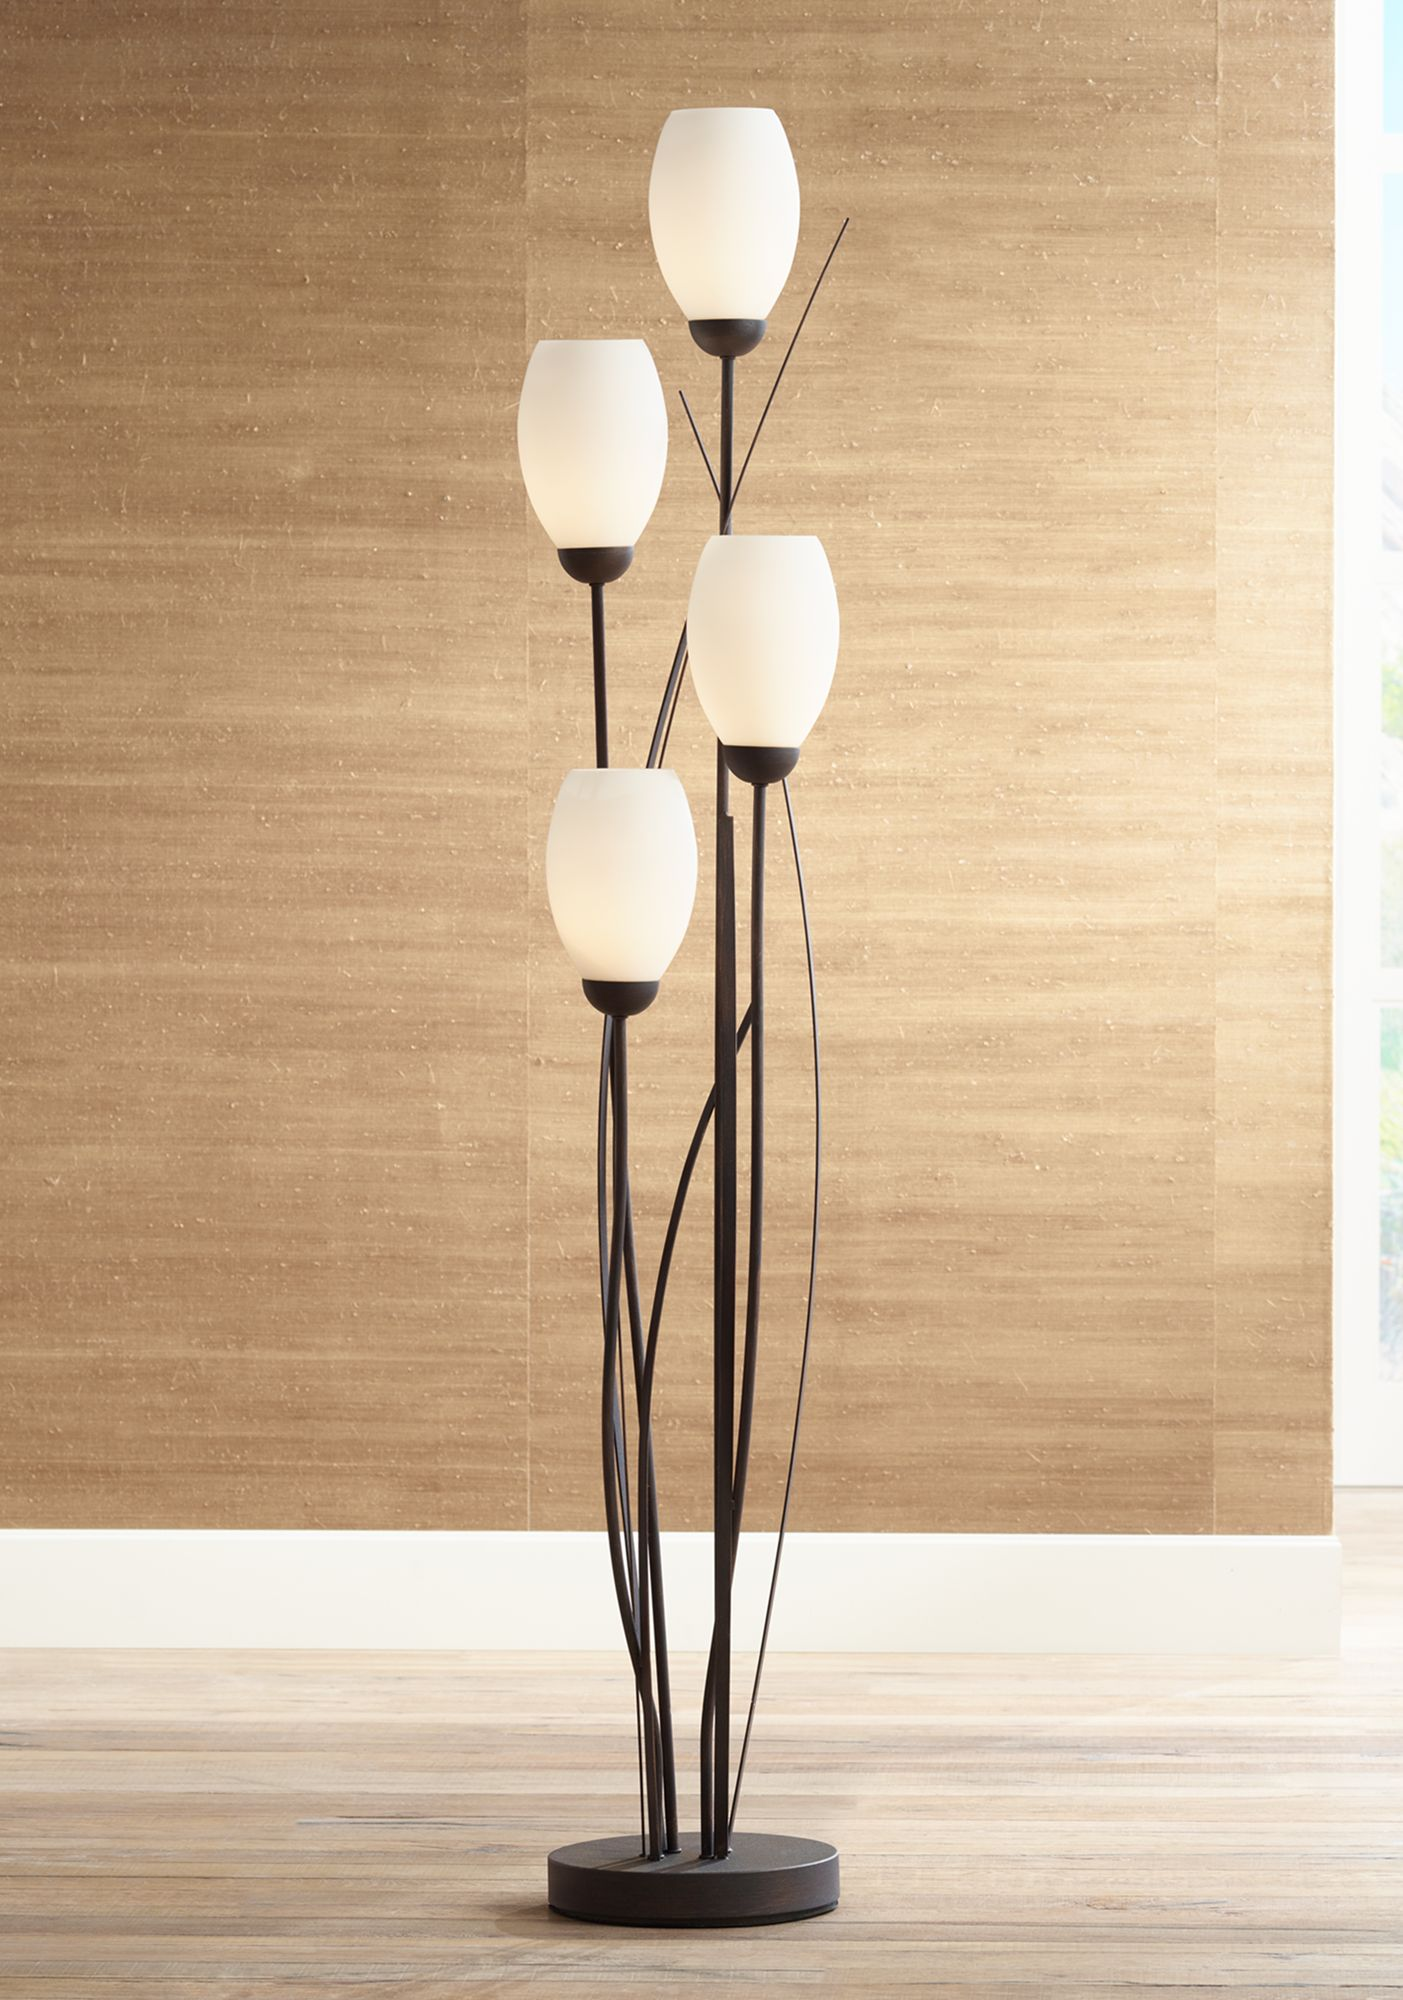 standard lamps black metal and white glass tulip 4 light floor lamp FNYPTIG